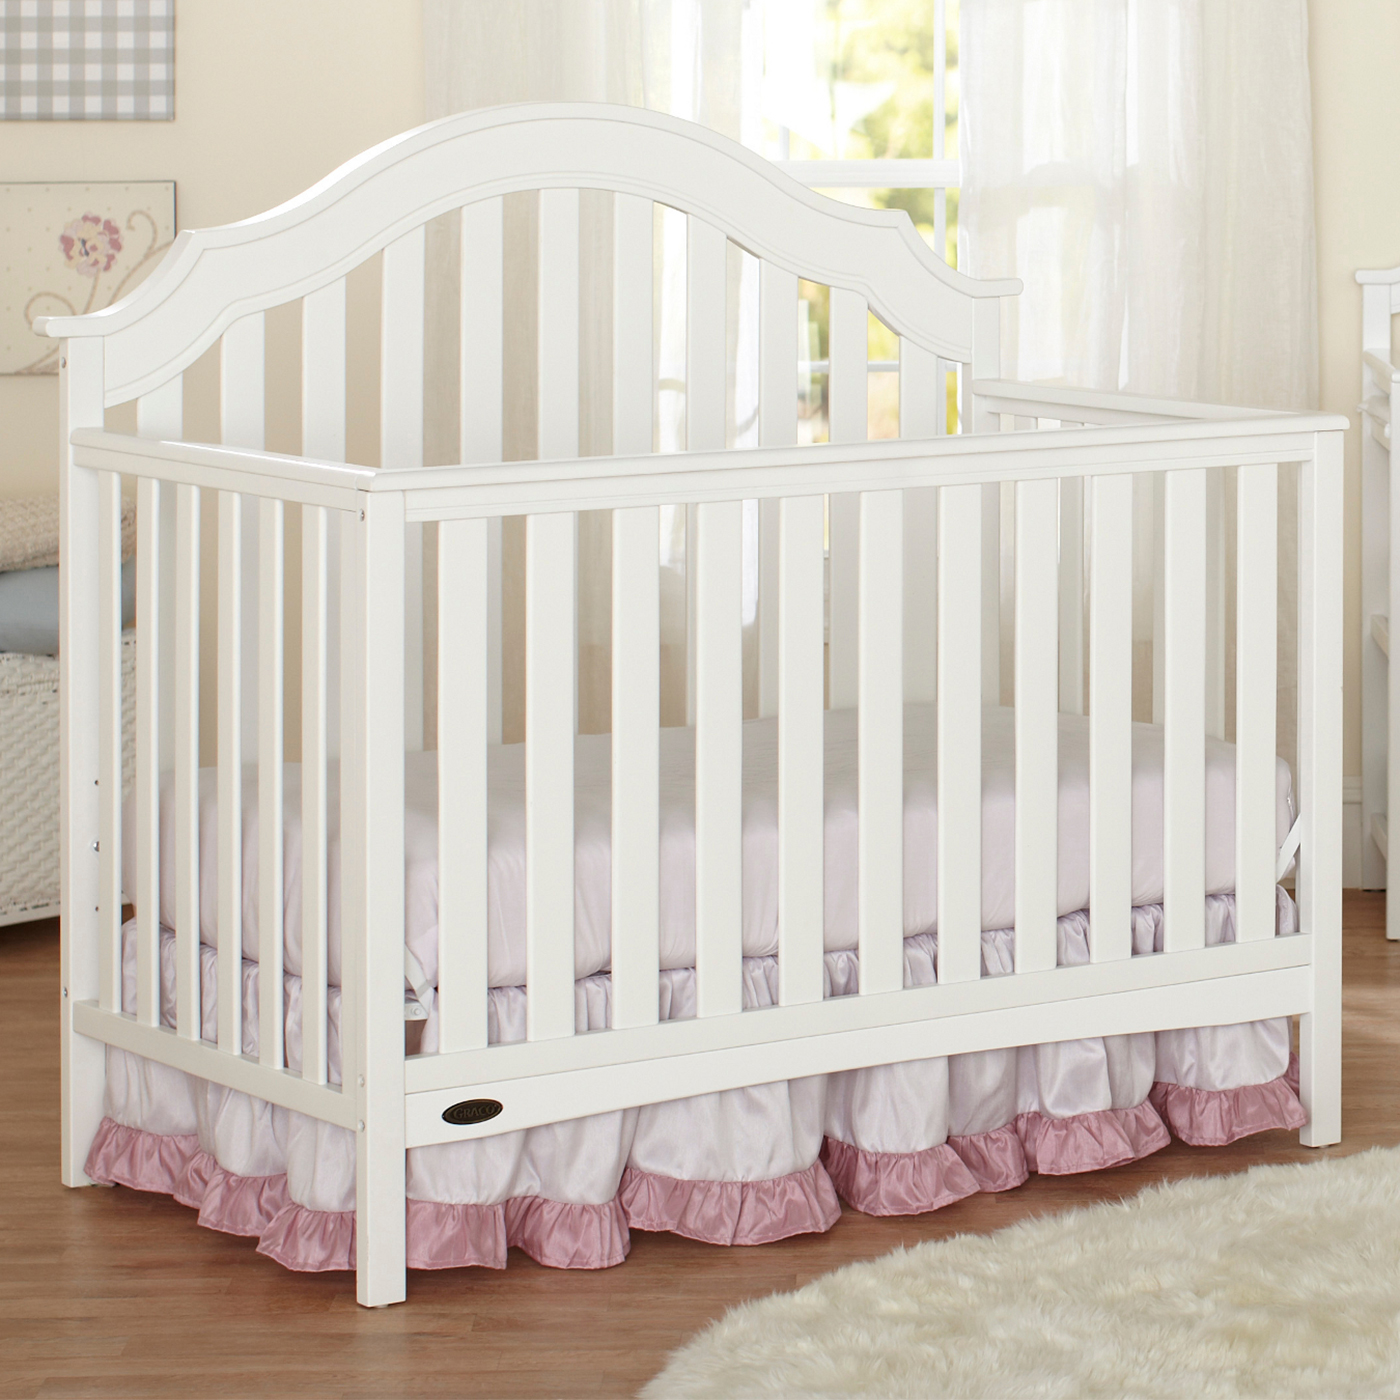 Graco Cribs Addison 4 In 1 Convertible Crib With Mattress In White FREE  SHIPPING